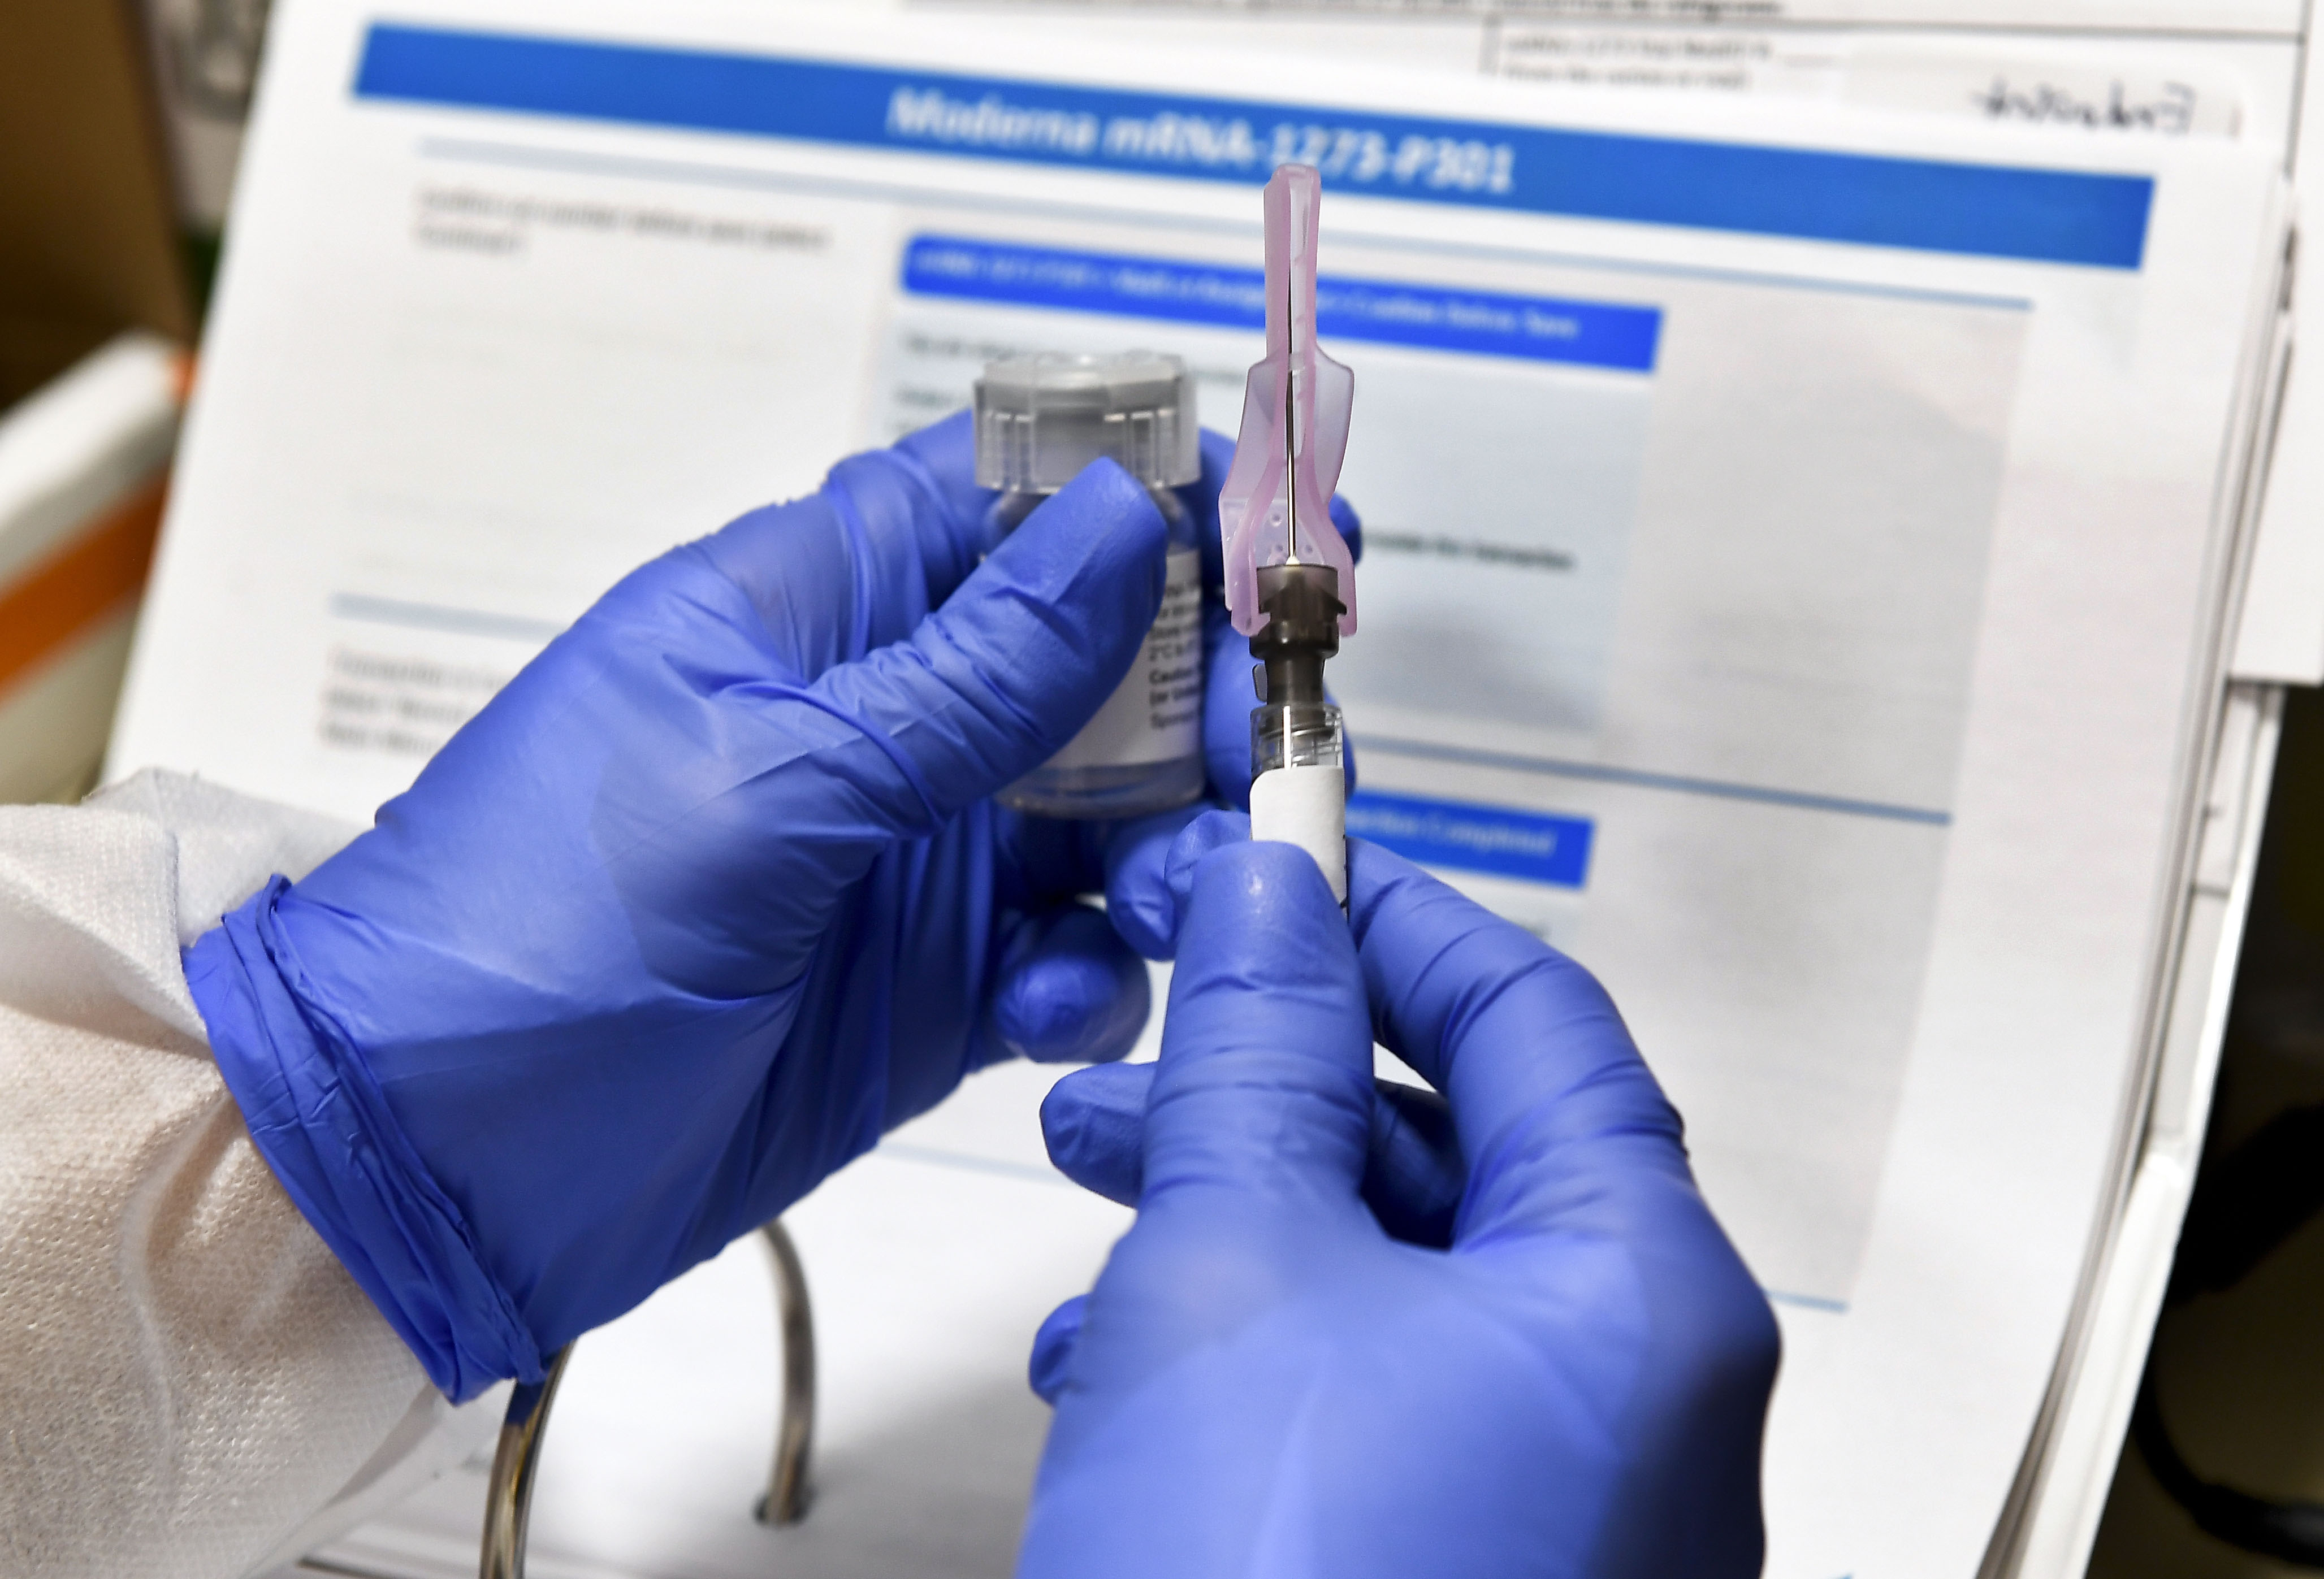 A nurse prepares a shot of a possible Covid-19 vaccine in Binghamton, New York, on July 27. The vaccine is developed by the National Institutes of Health and Moderna.